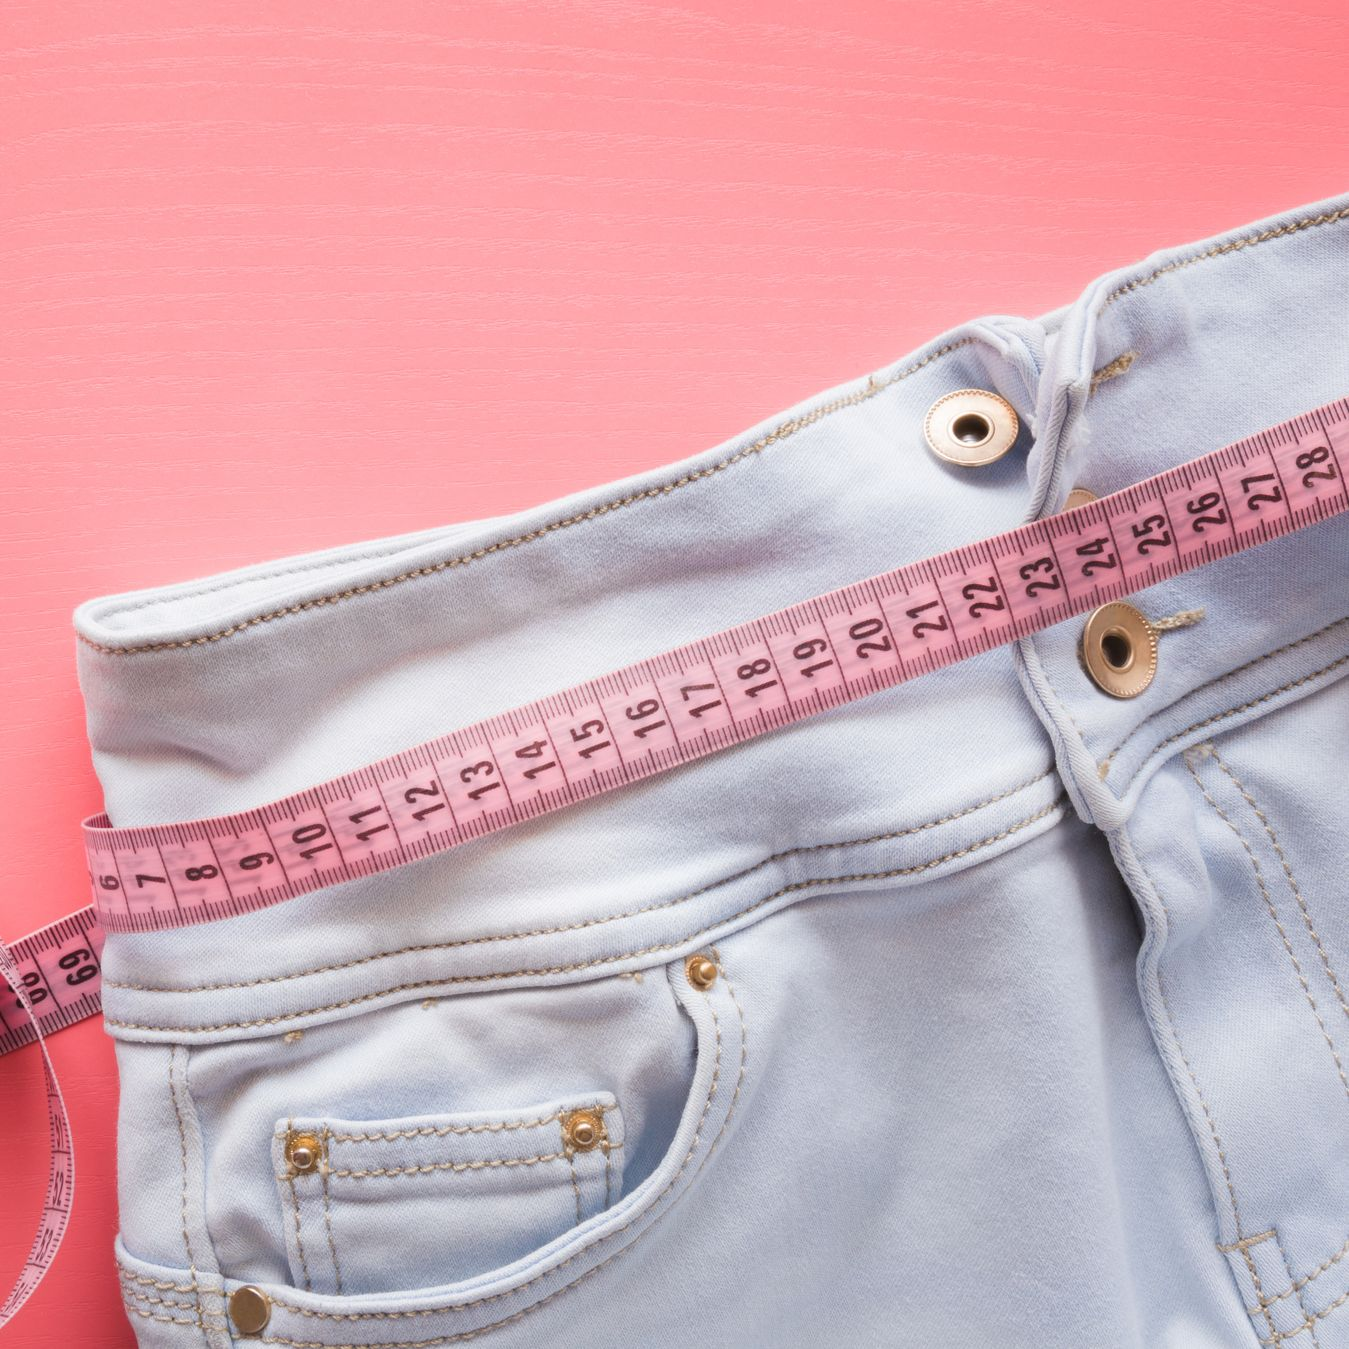 Measure tape with light blue jeans on the pastel pink background. Women diet. Mock up for healthy lifestyle, body slimming, weight loss or dressmaker's offer or other ideas. Empty place for text.